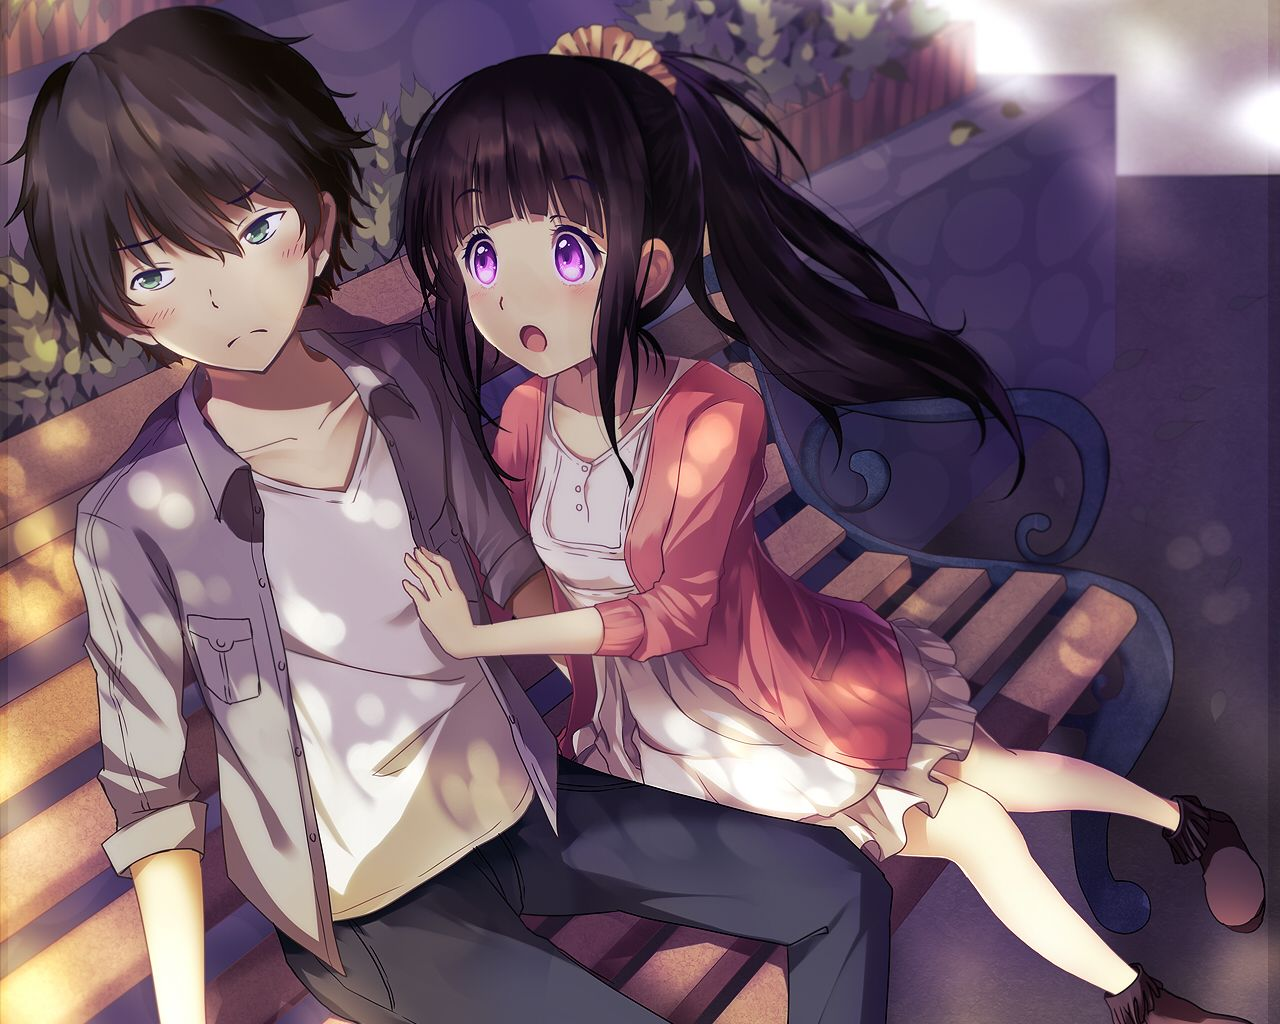 Aliasing Aqua Eyes Bisonbison Brown Hair Chitanda Eru Cropped Dress Hyouka Male Oreki Houtarou Park Ponytail Purple Eyes Animasi Karakter Animasi Gambar Anime